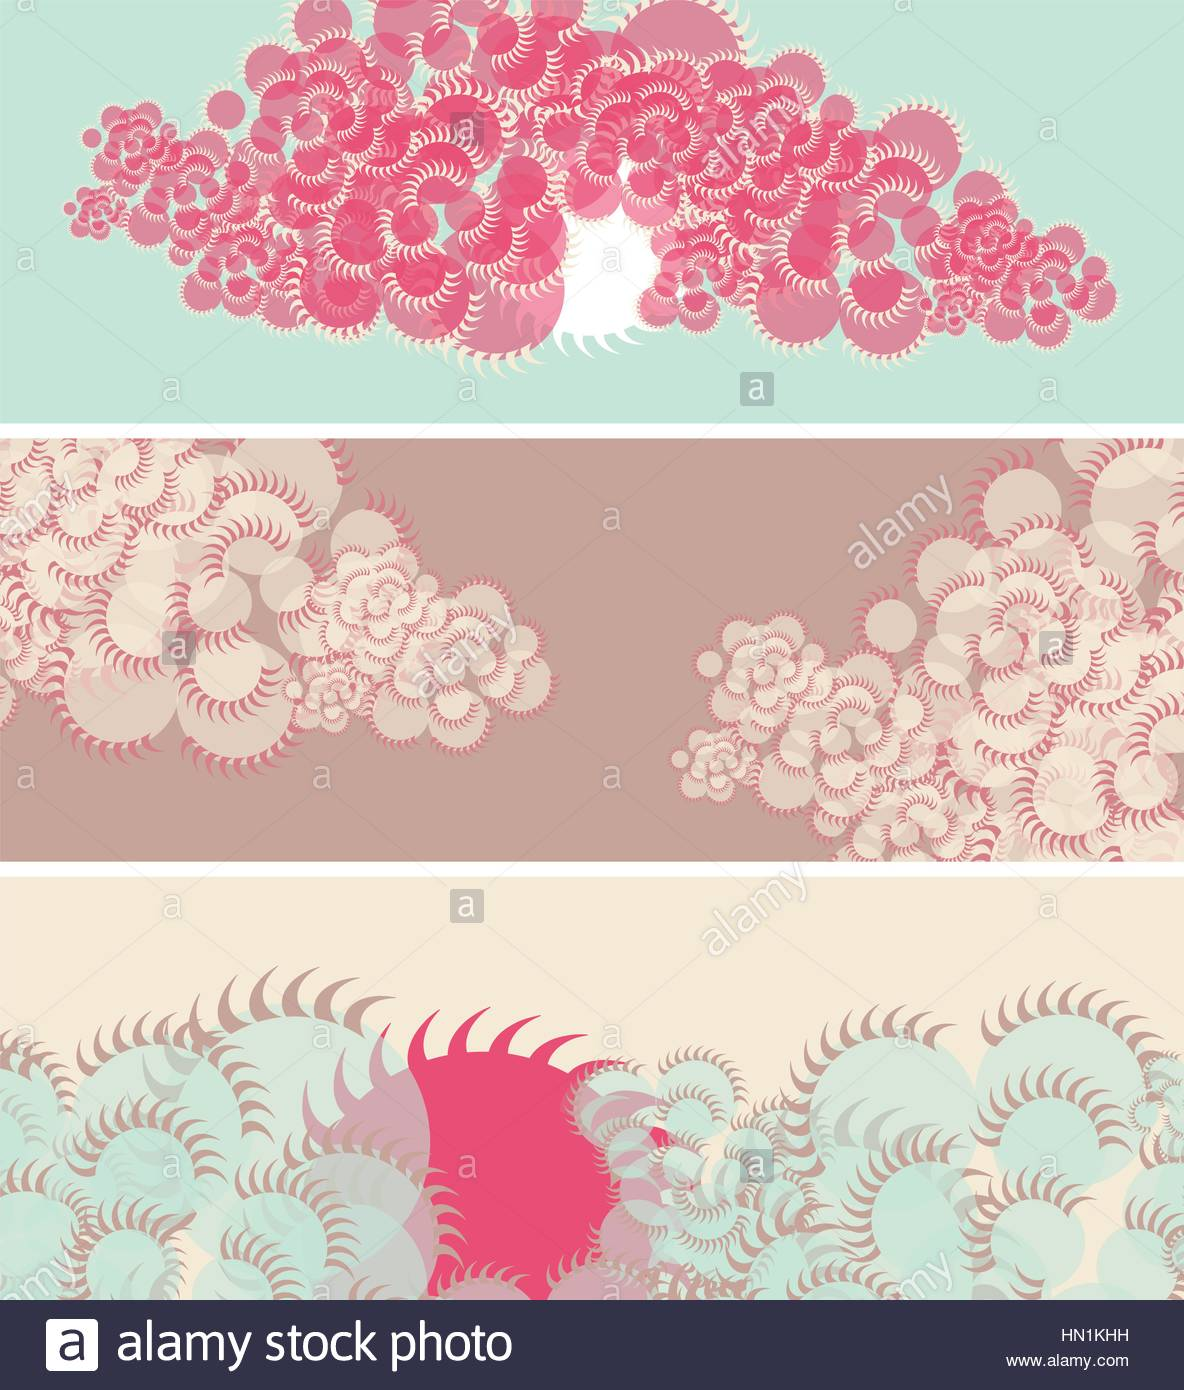 set of banners with sun and clouds in japanese style in blue and stock vector set of banners with sun and clouds in japanese style in blue and pink shades